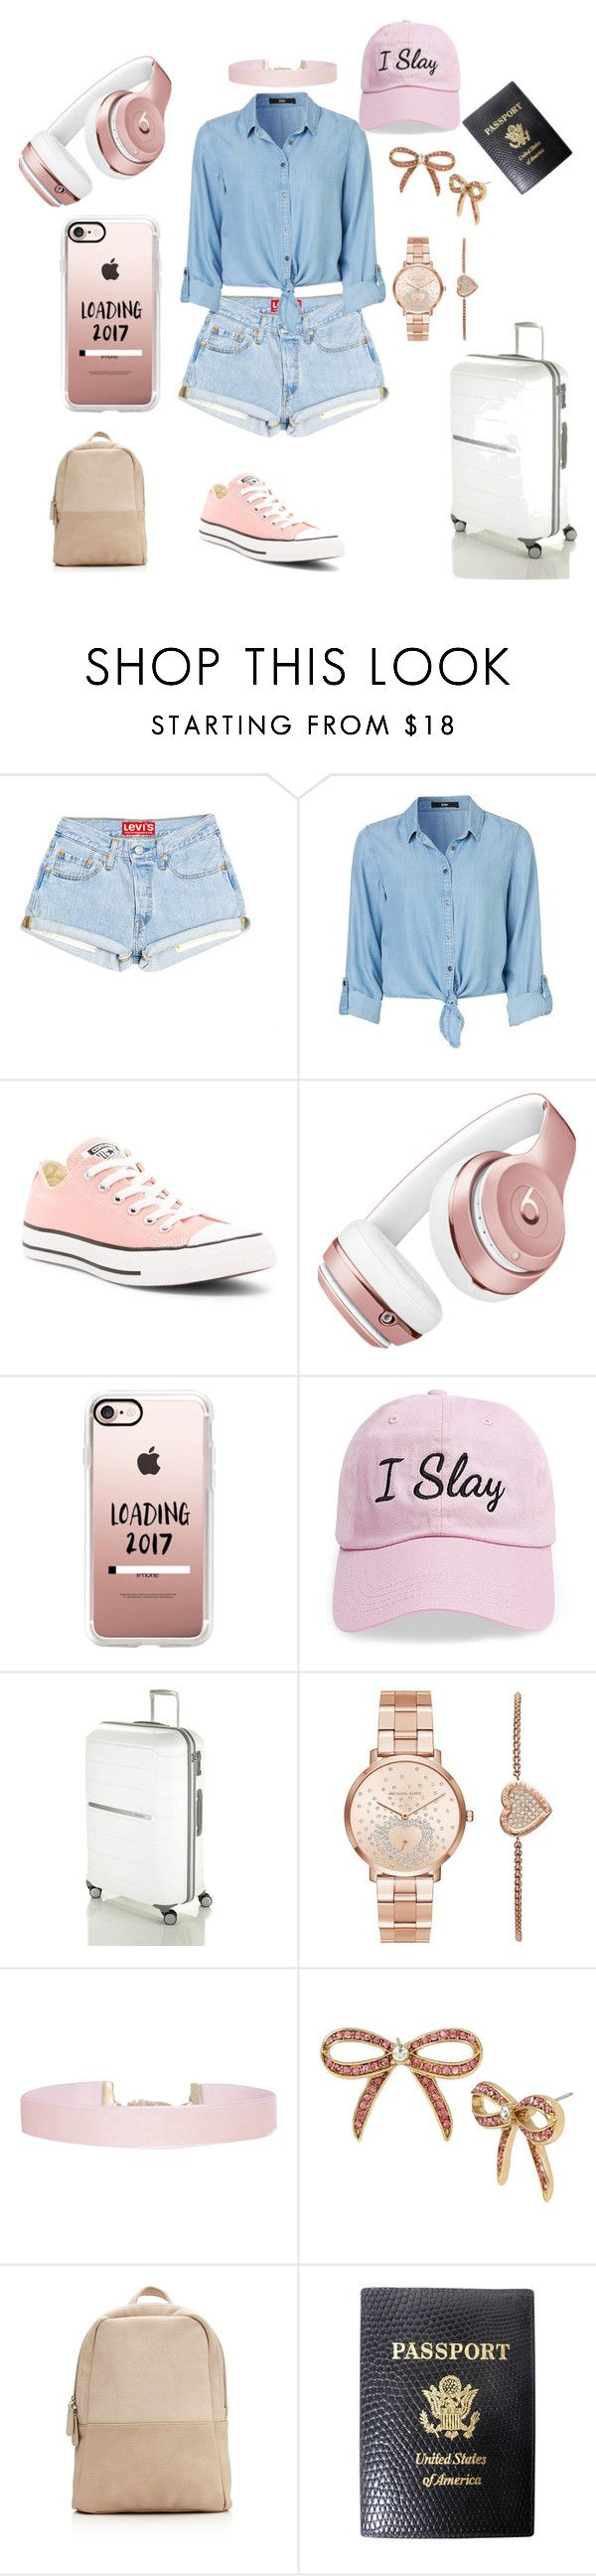 """Cuba!!!! Here I Come!!!"" by sunny-heaven ❤ liked on Polyvore featuring Converse, Beats by Dr. Dre, Casetify, Steve Madden, Michael Kors, Humble Chic, Betsey Johnson and Mark Cross"